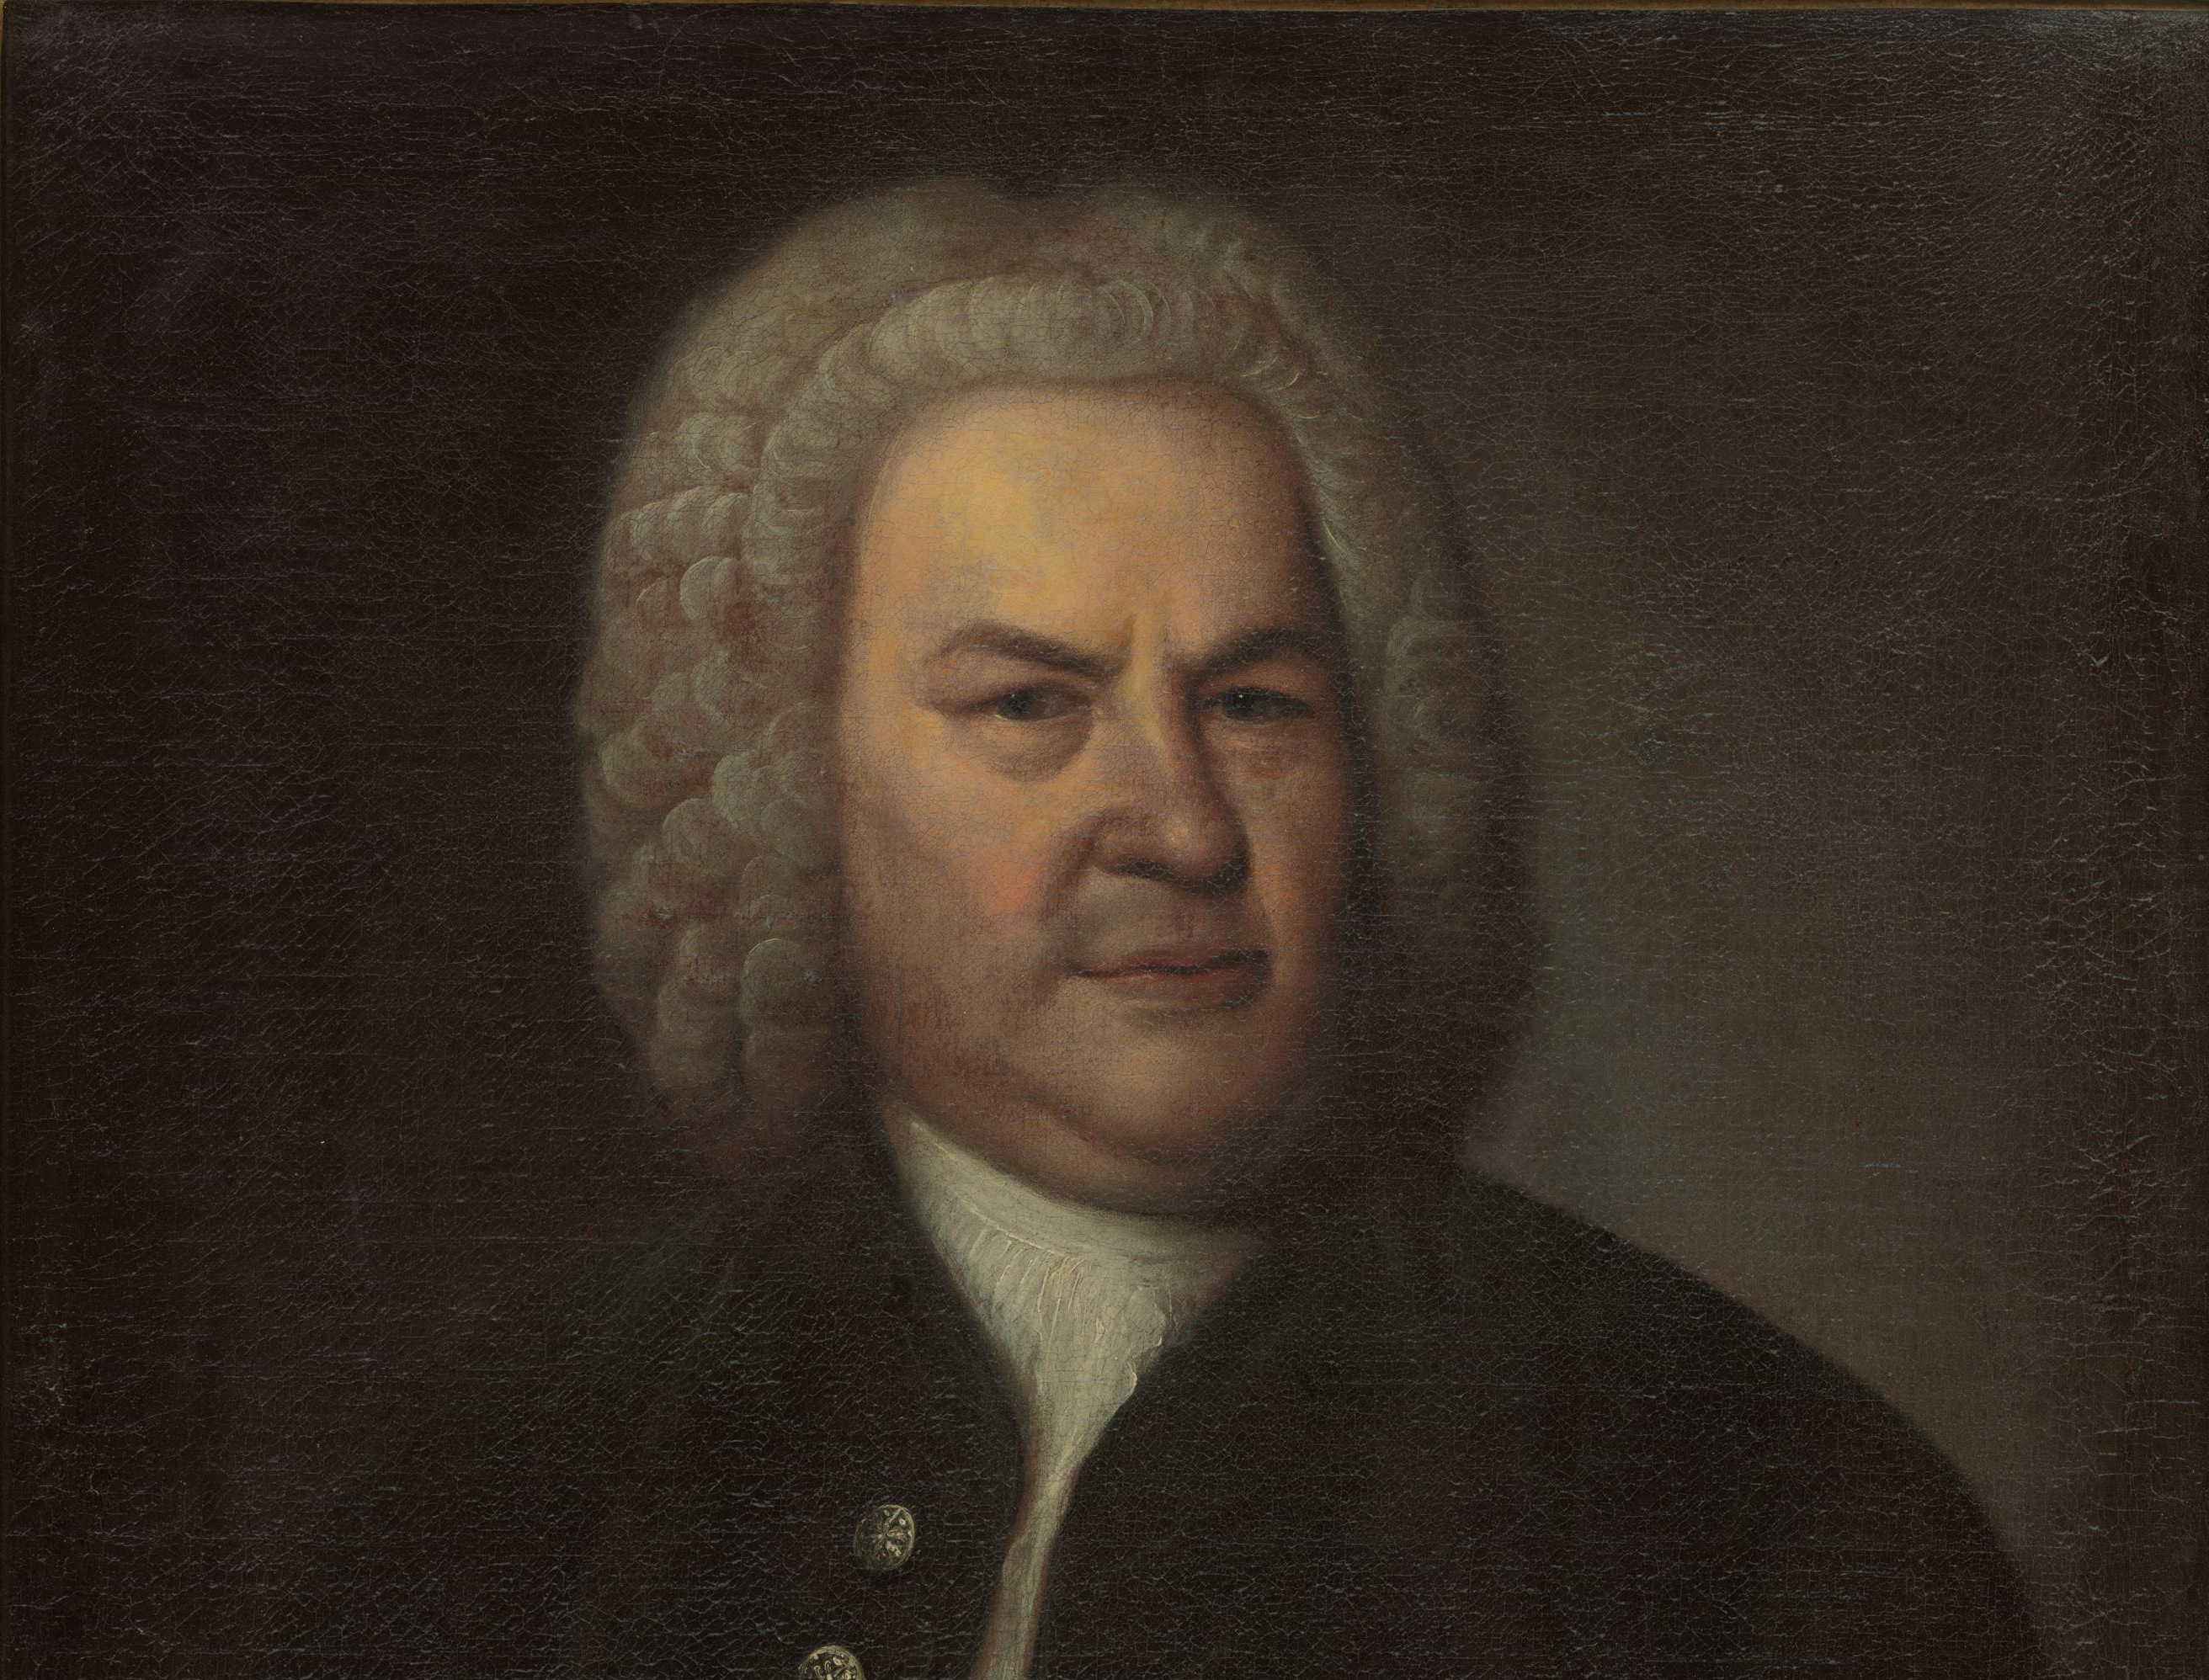 Sorry, Sony Music, you don't own the rights to Bach's music on